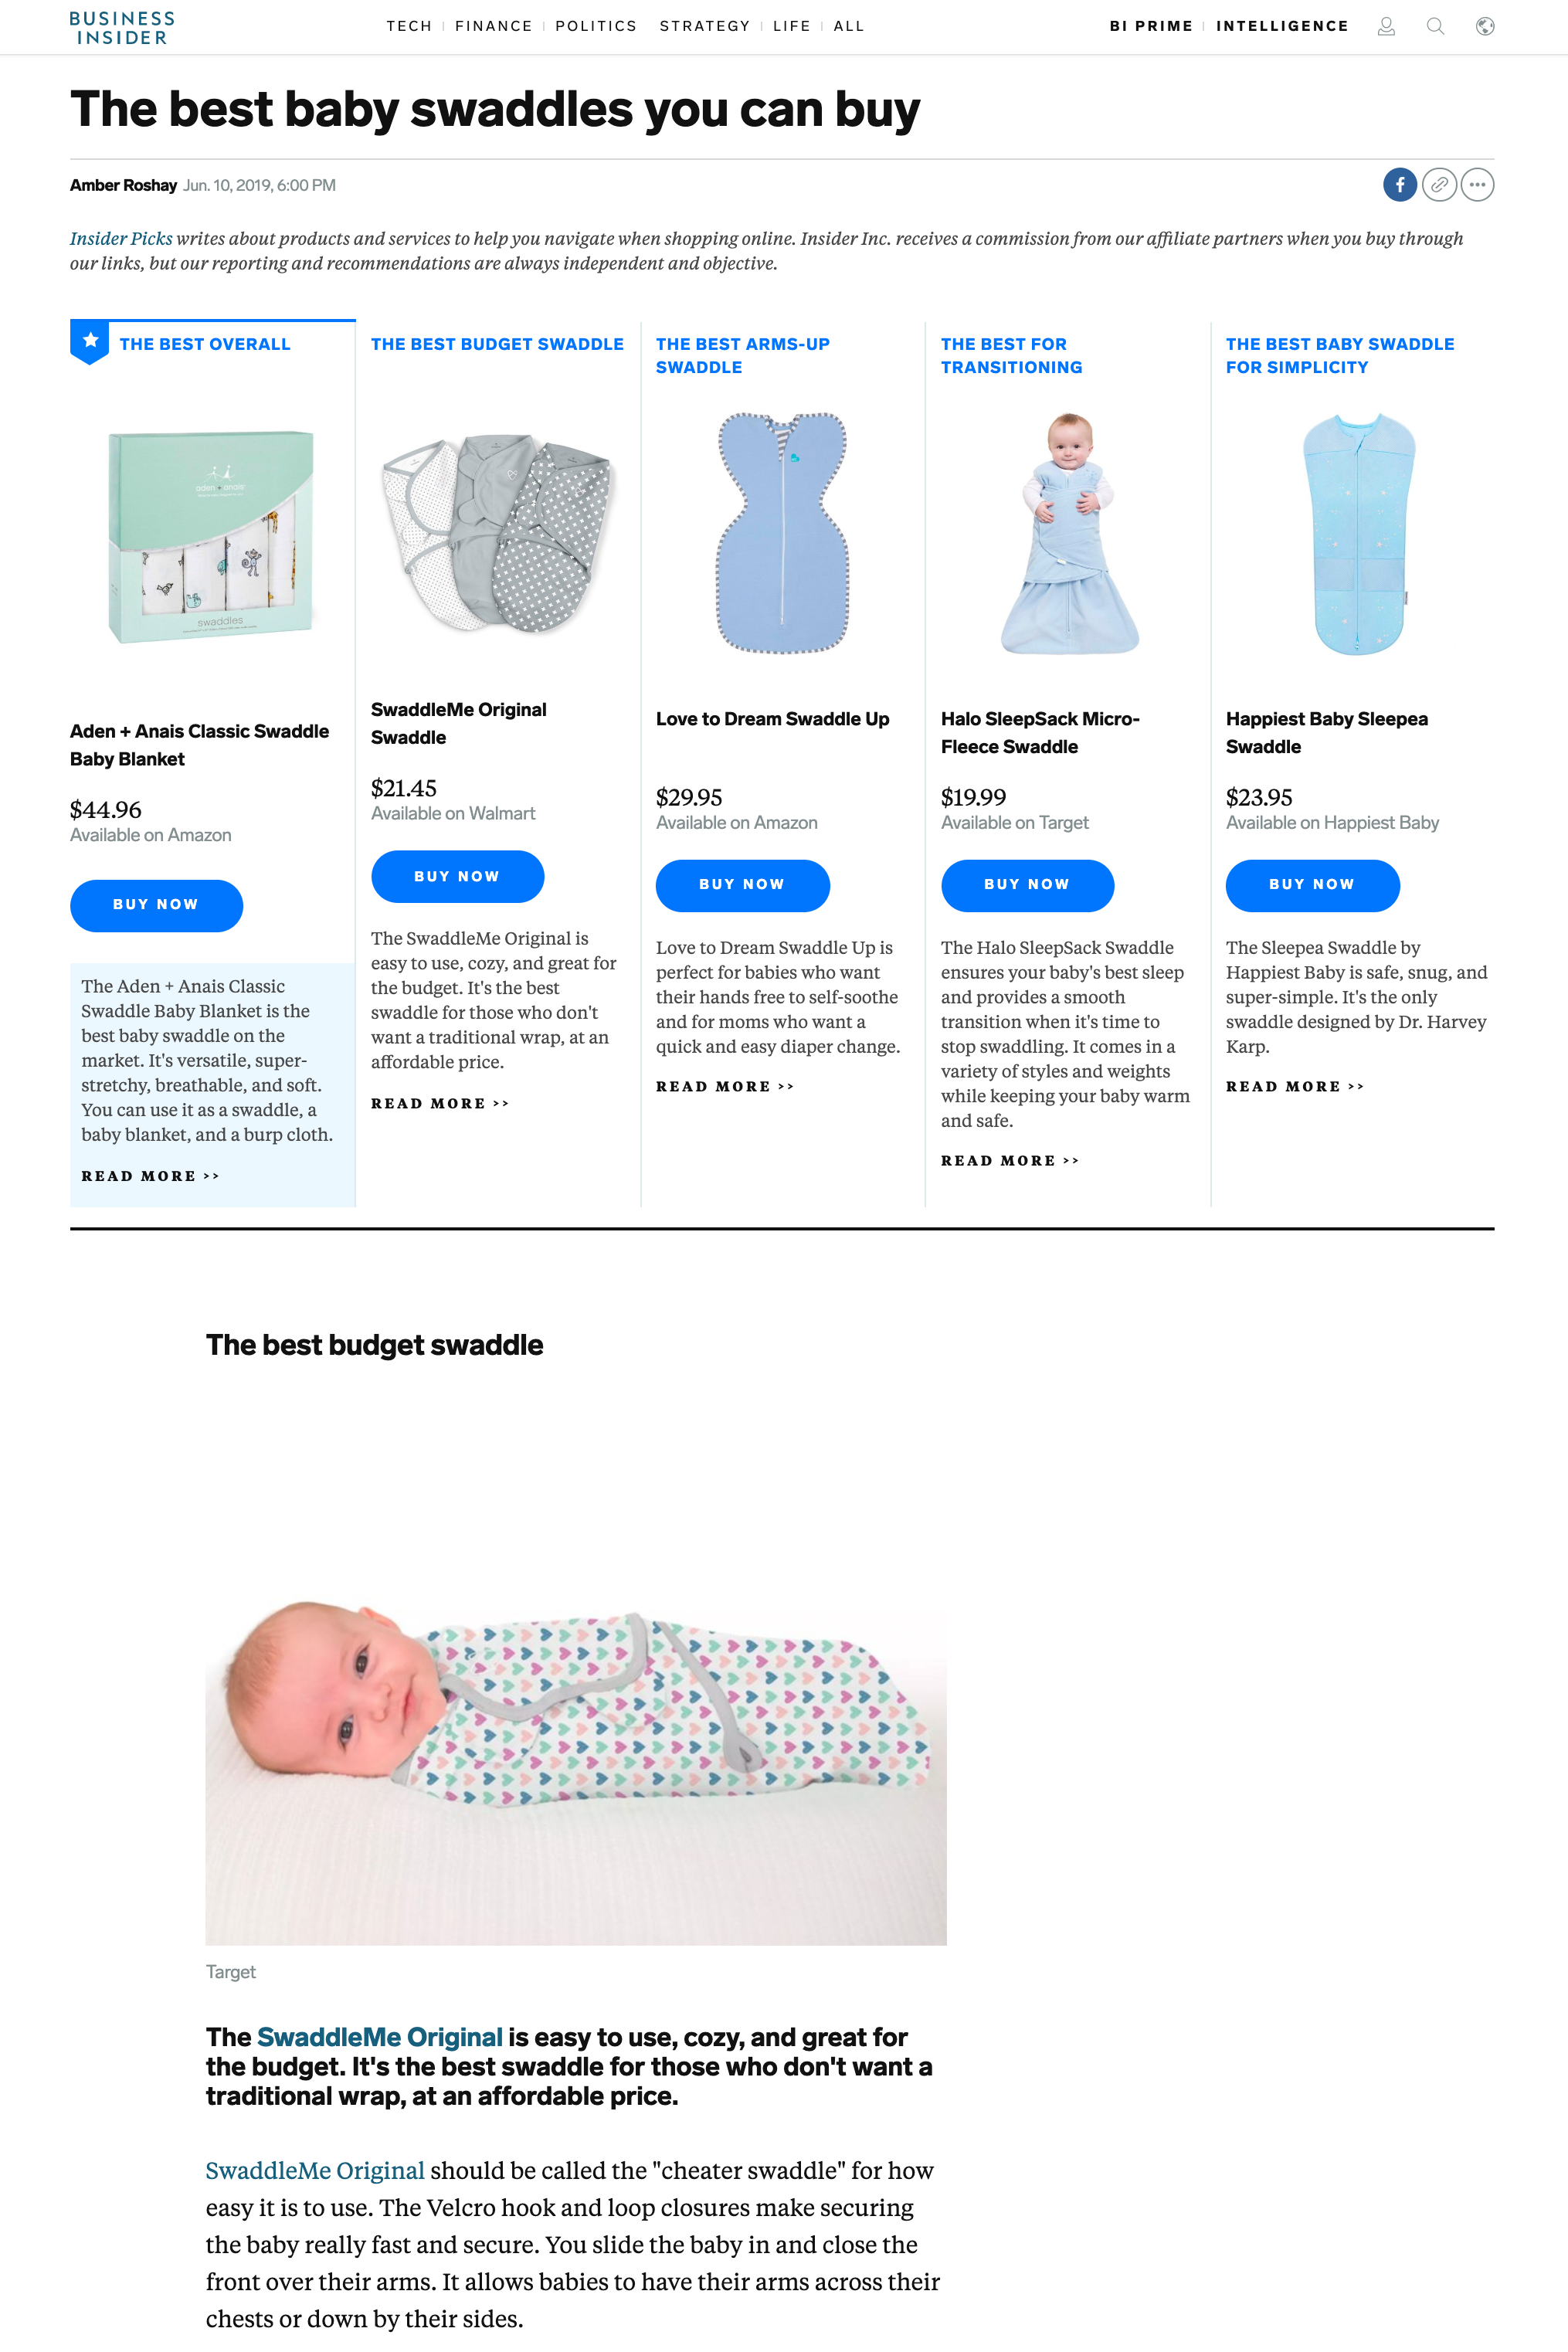 2019.06.10_Business Insider_SwaddleMe Original Swaddle_cropped 2x3.png